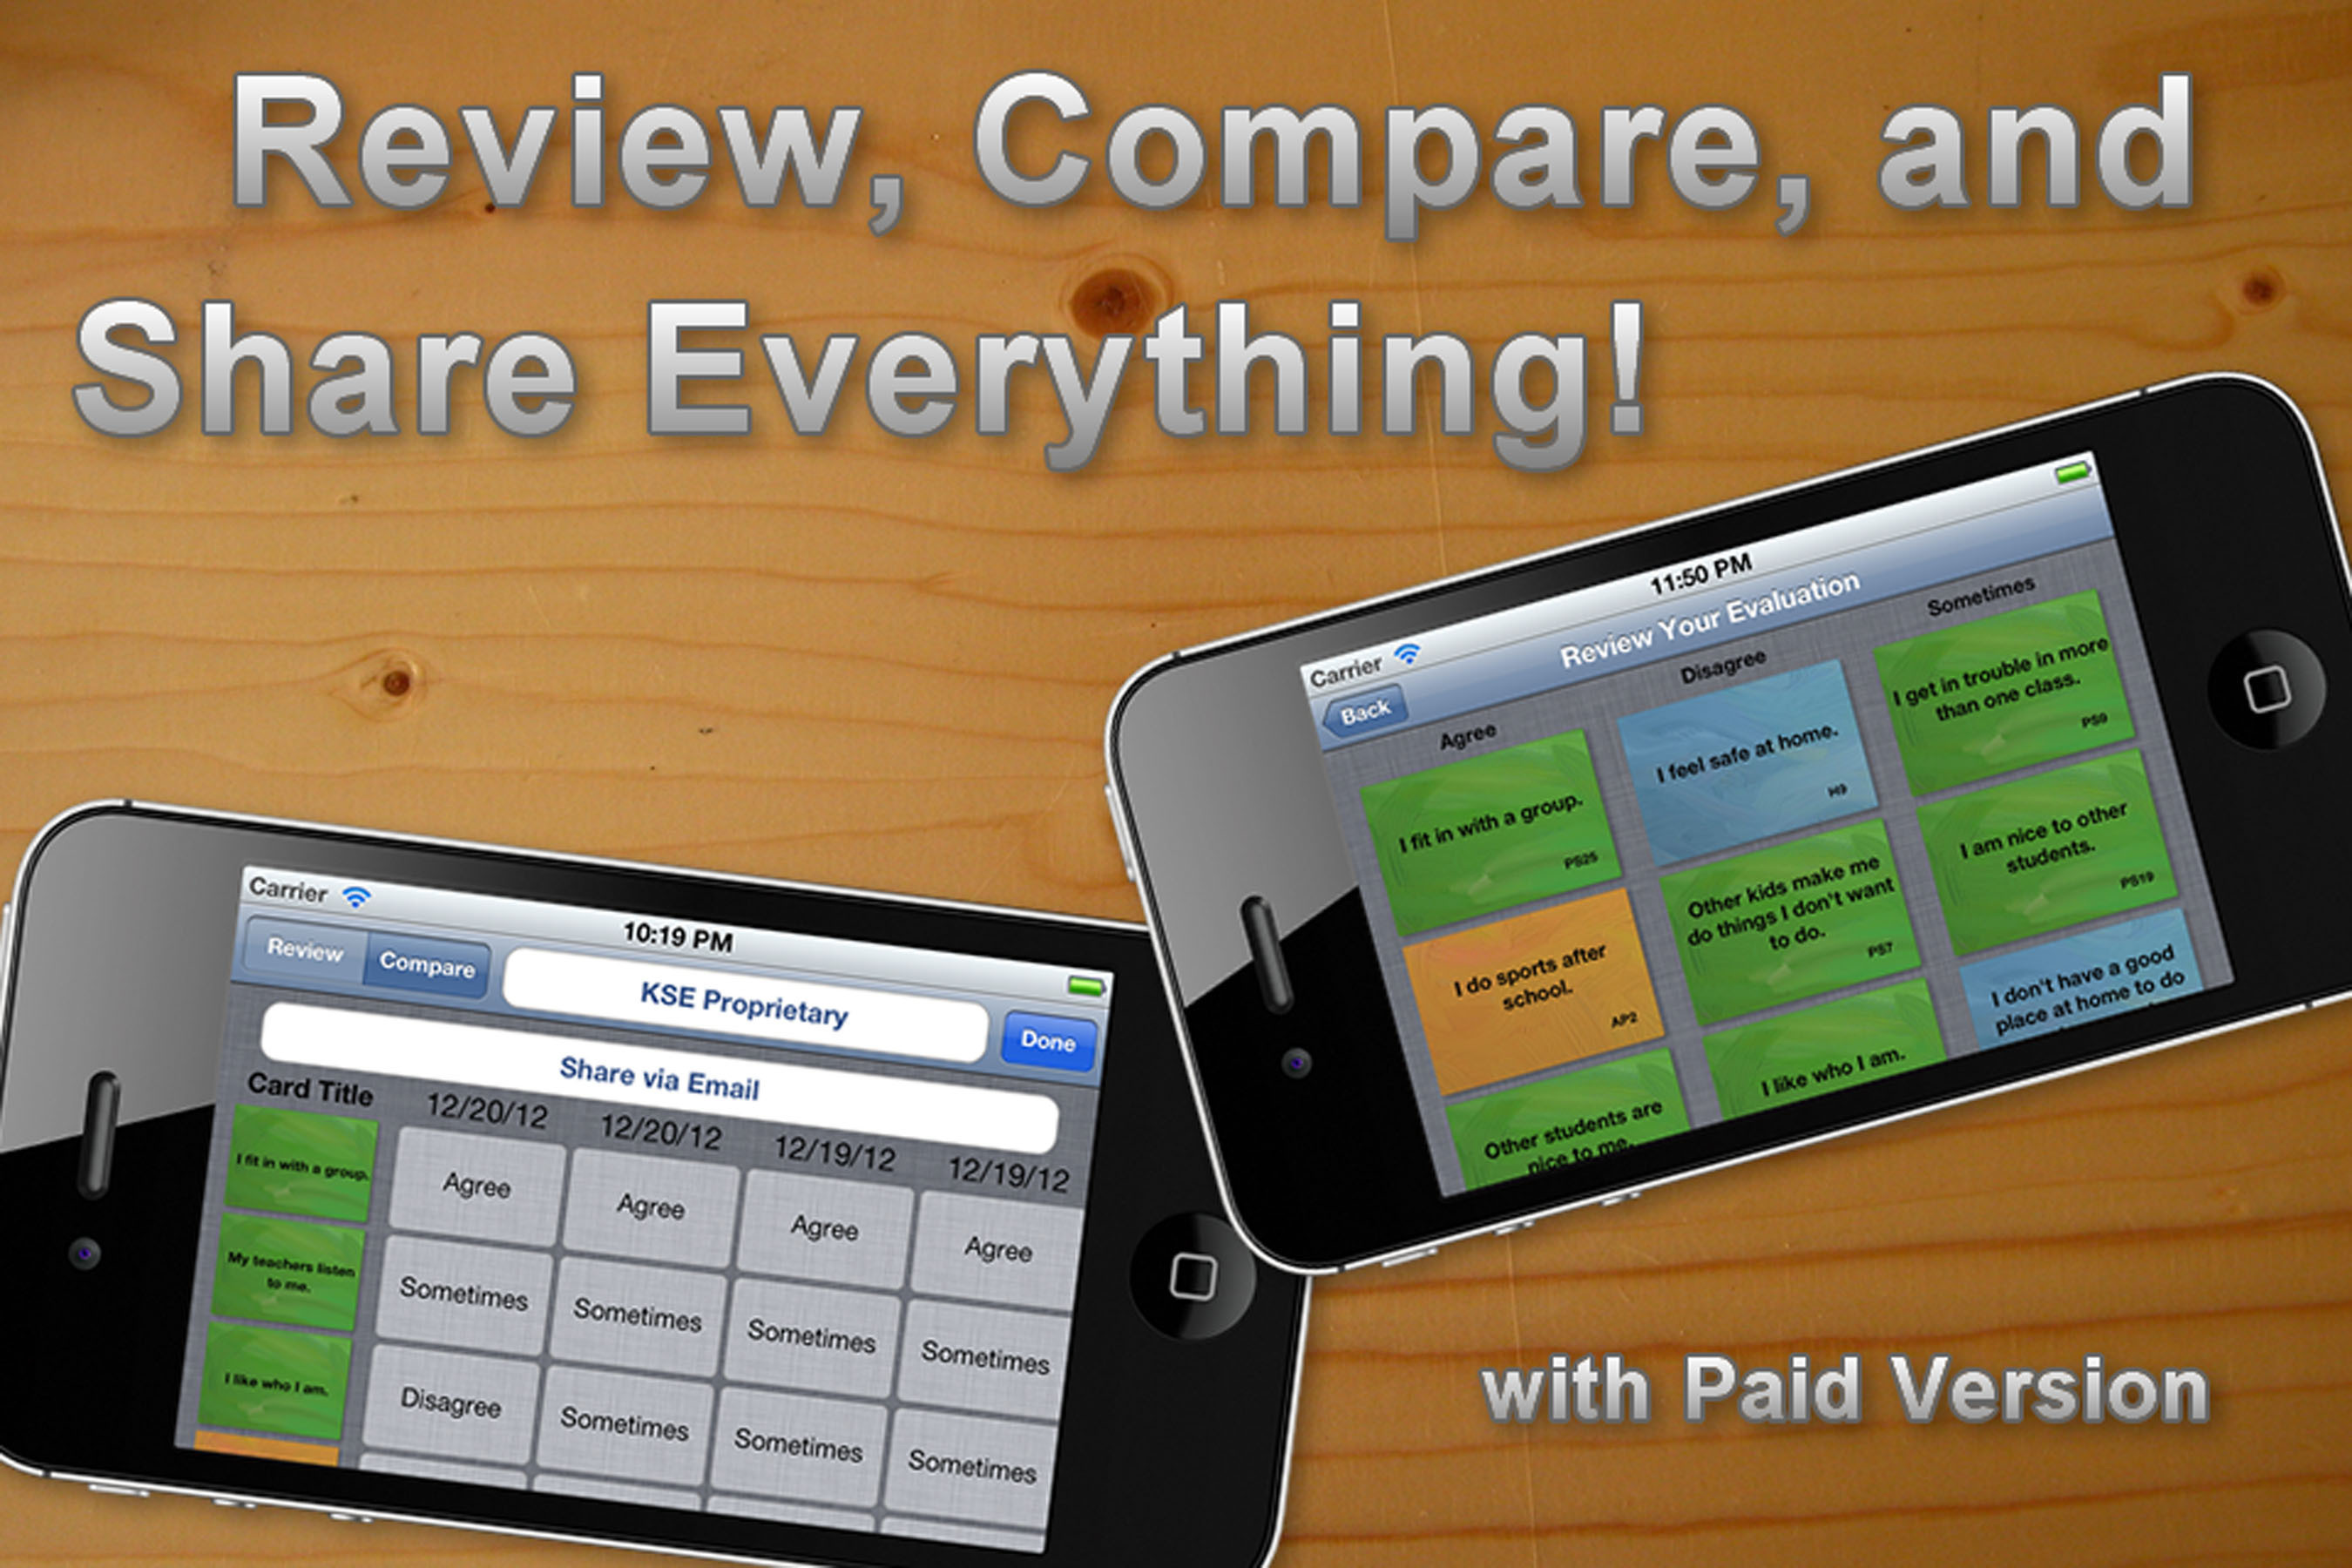 Review, compare and share everything with the paid version of Kids Self Evaluate mobile app. (PRNewsFoto/APG Mobile Applications)